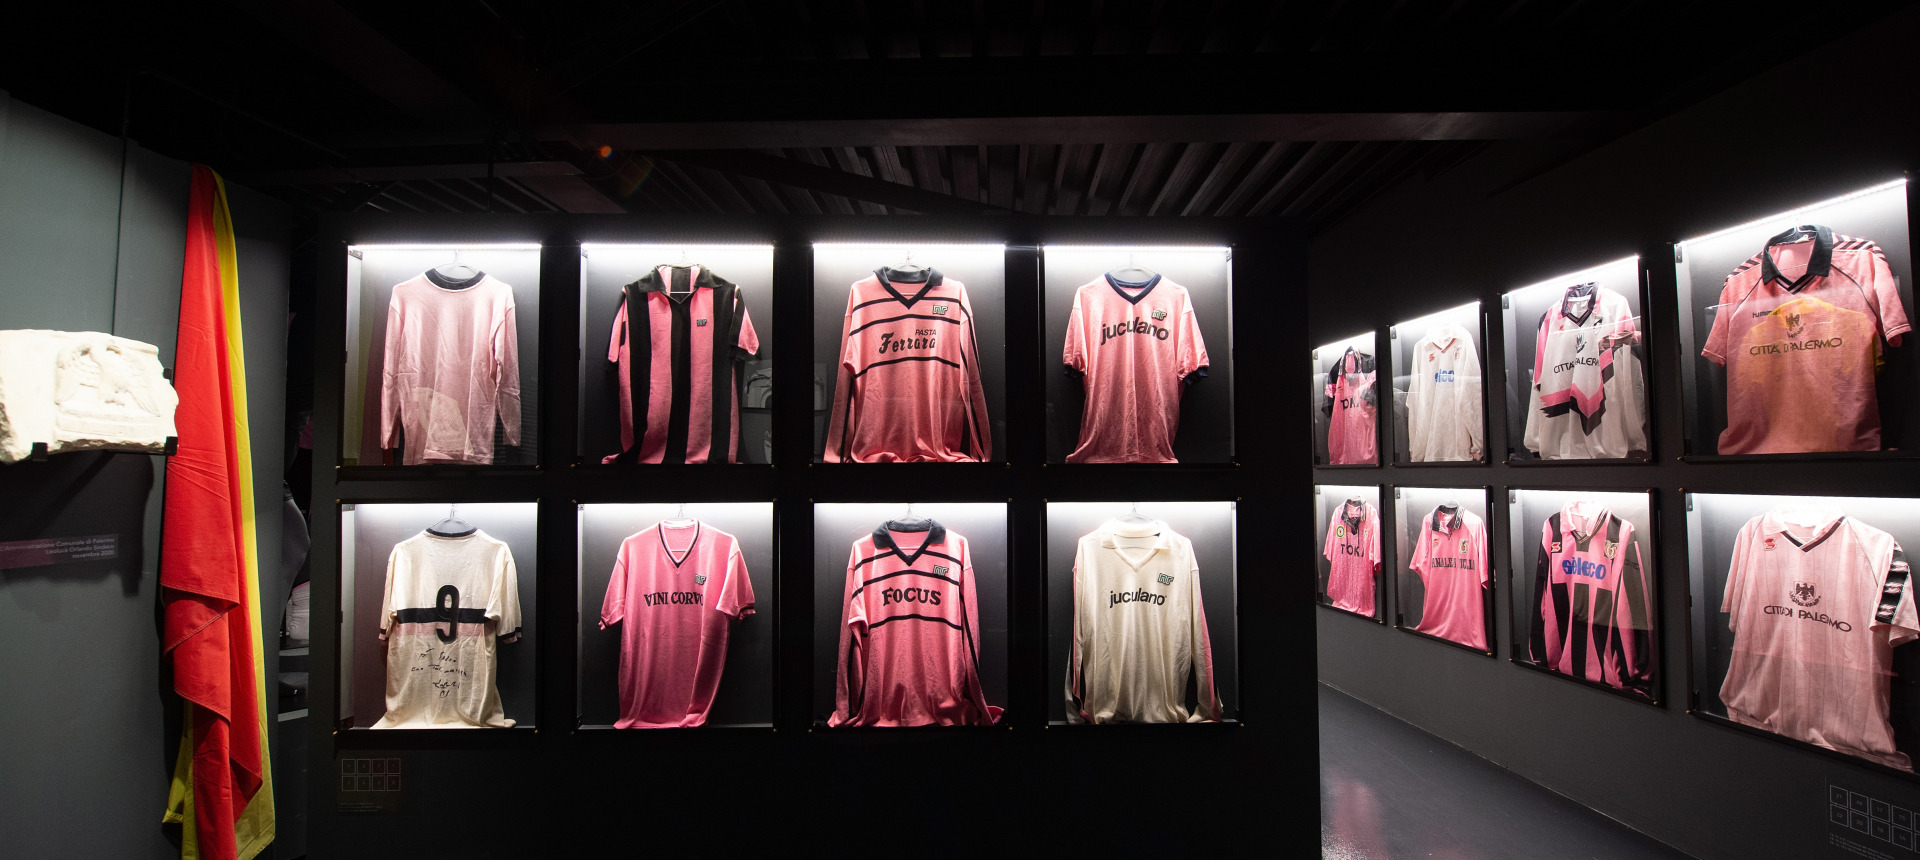 PALERMO FC IS 120 YEARS OLD: HERE IS THE PALERMO MUSEUM AT BARBERA